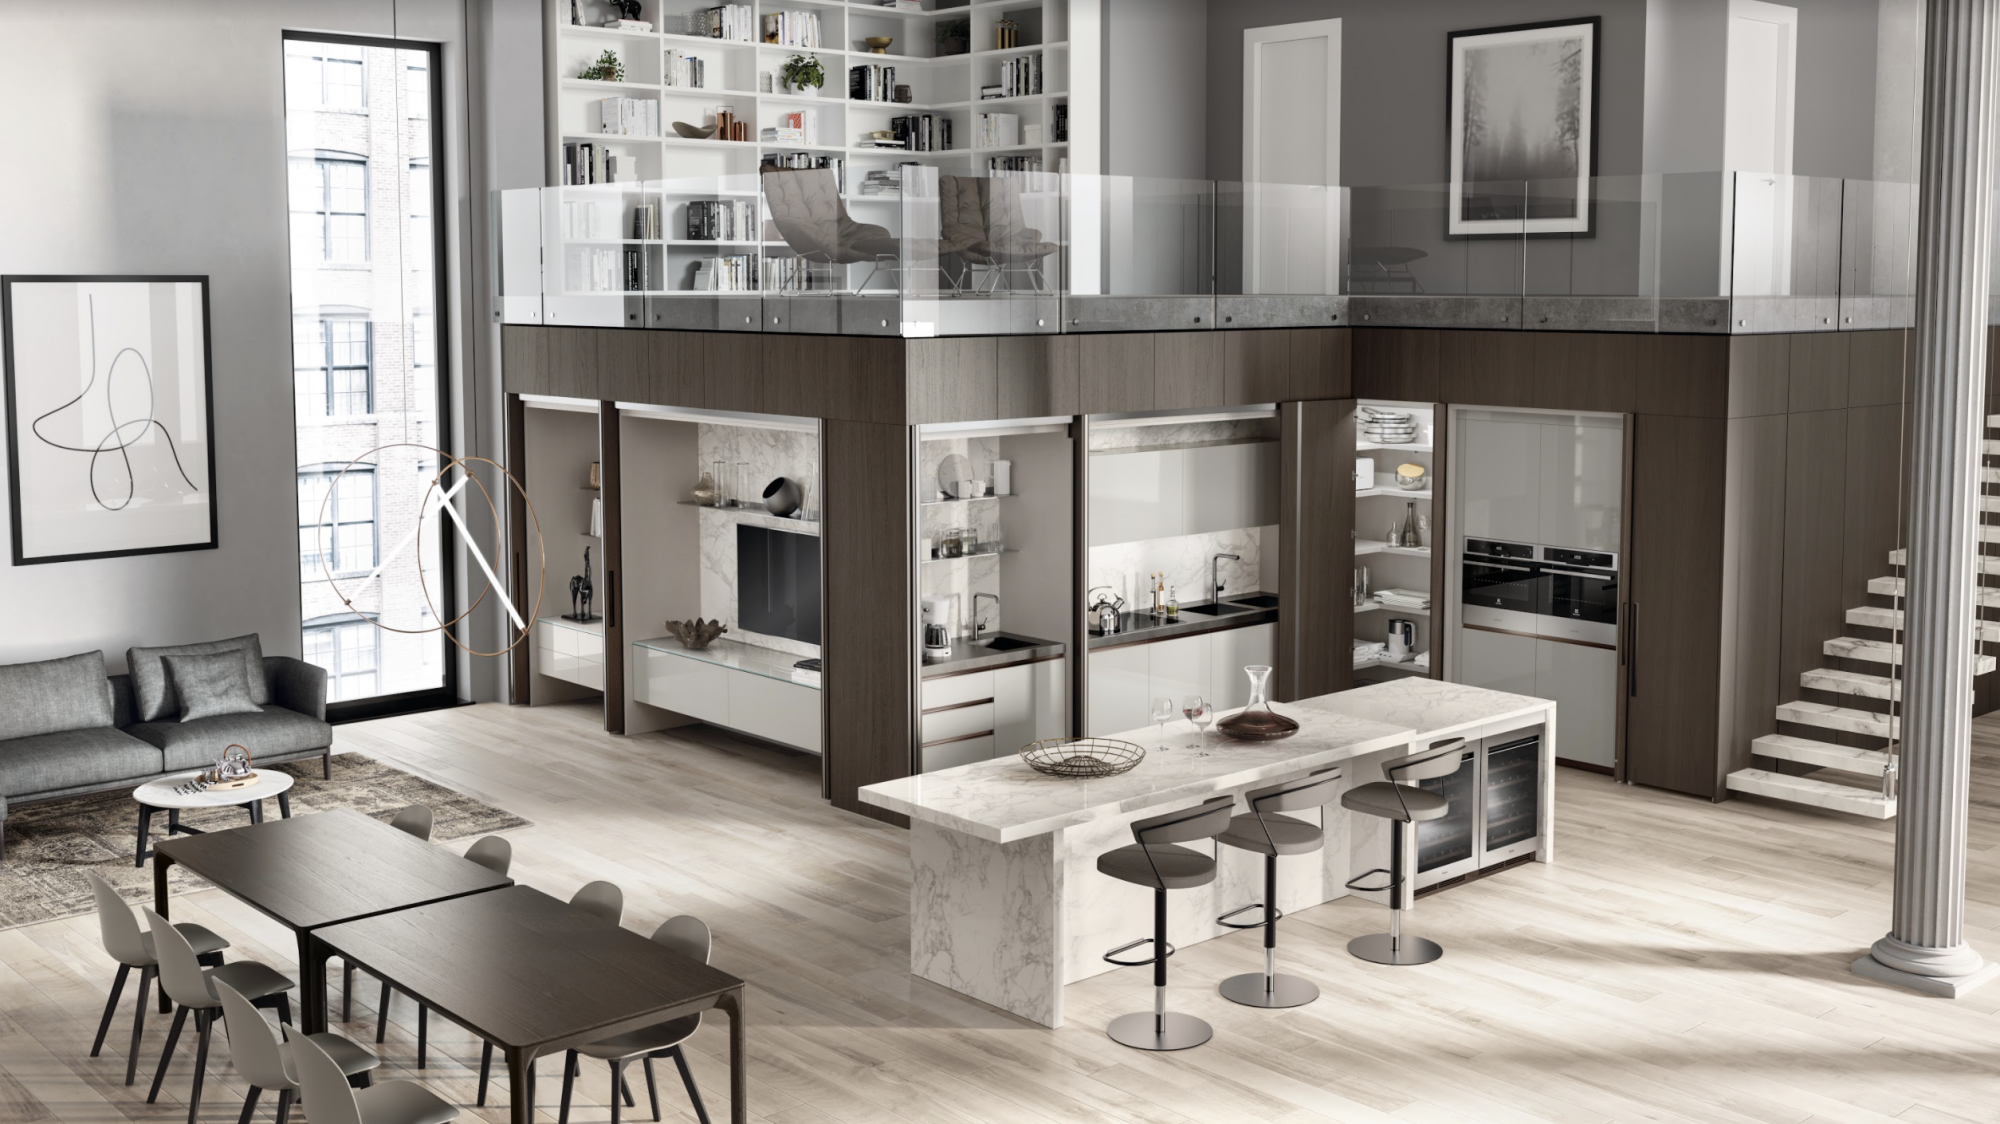 Home Tips: Scavolini's BoxLife Concept Can Elegantly Maximise Small Spaces